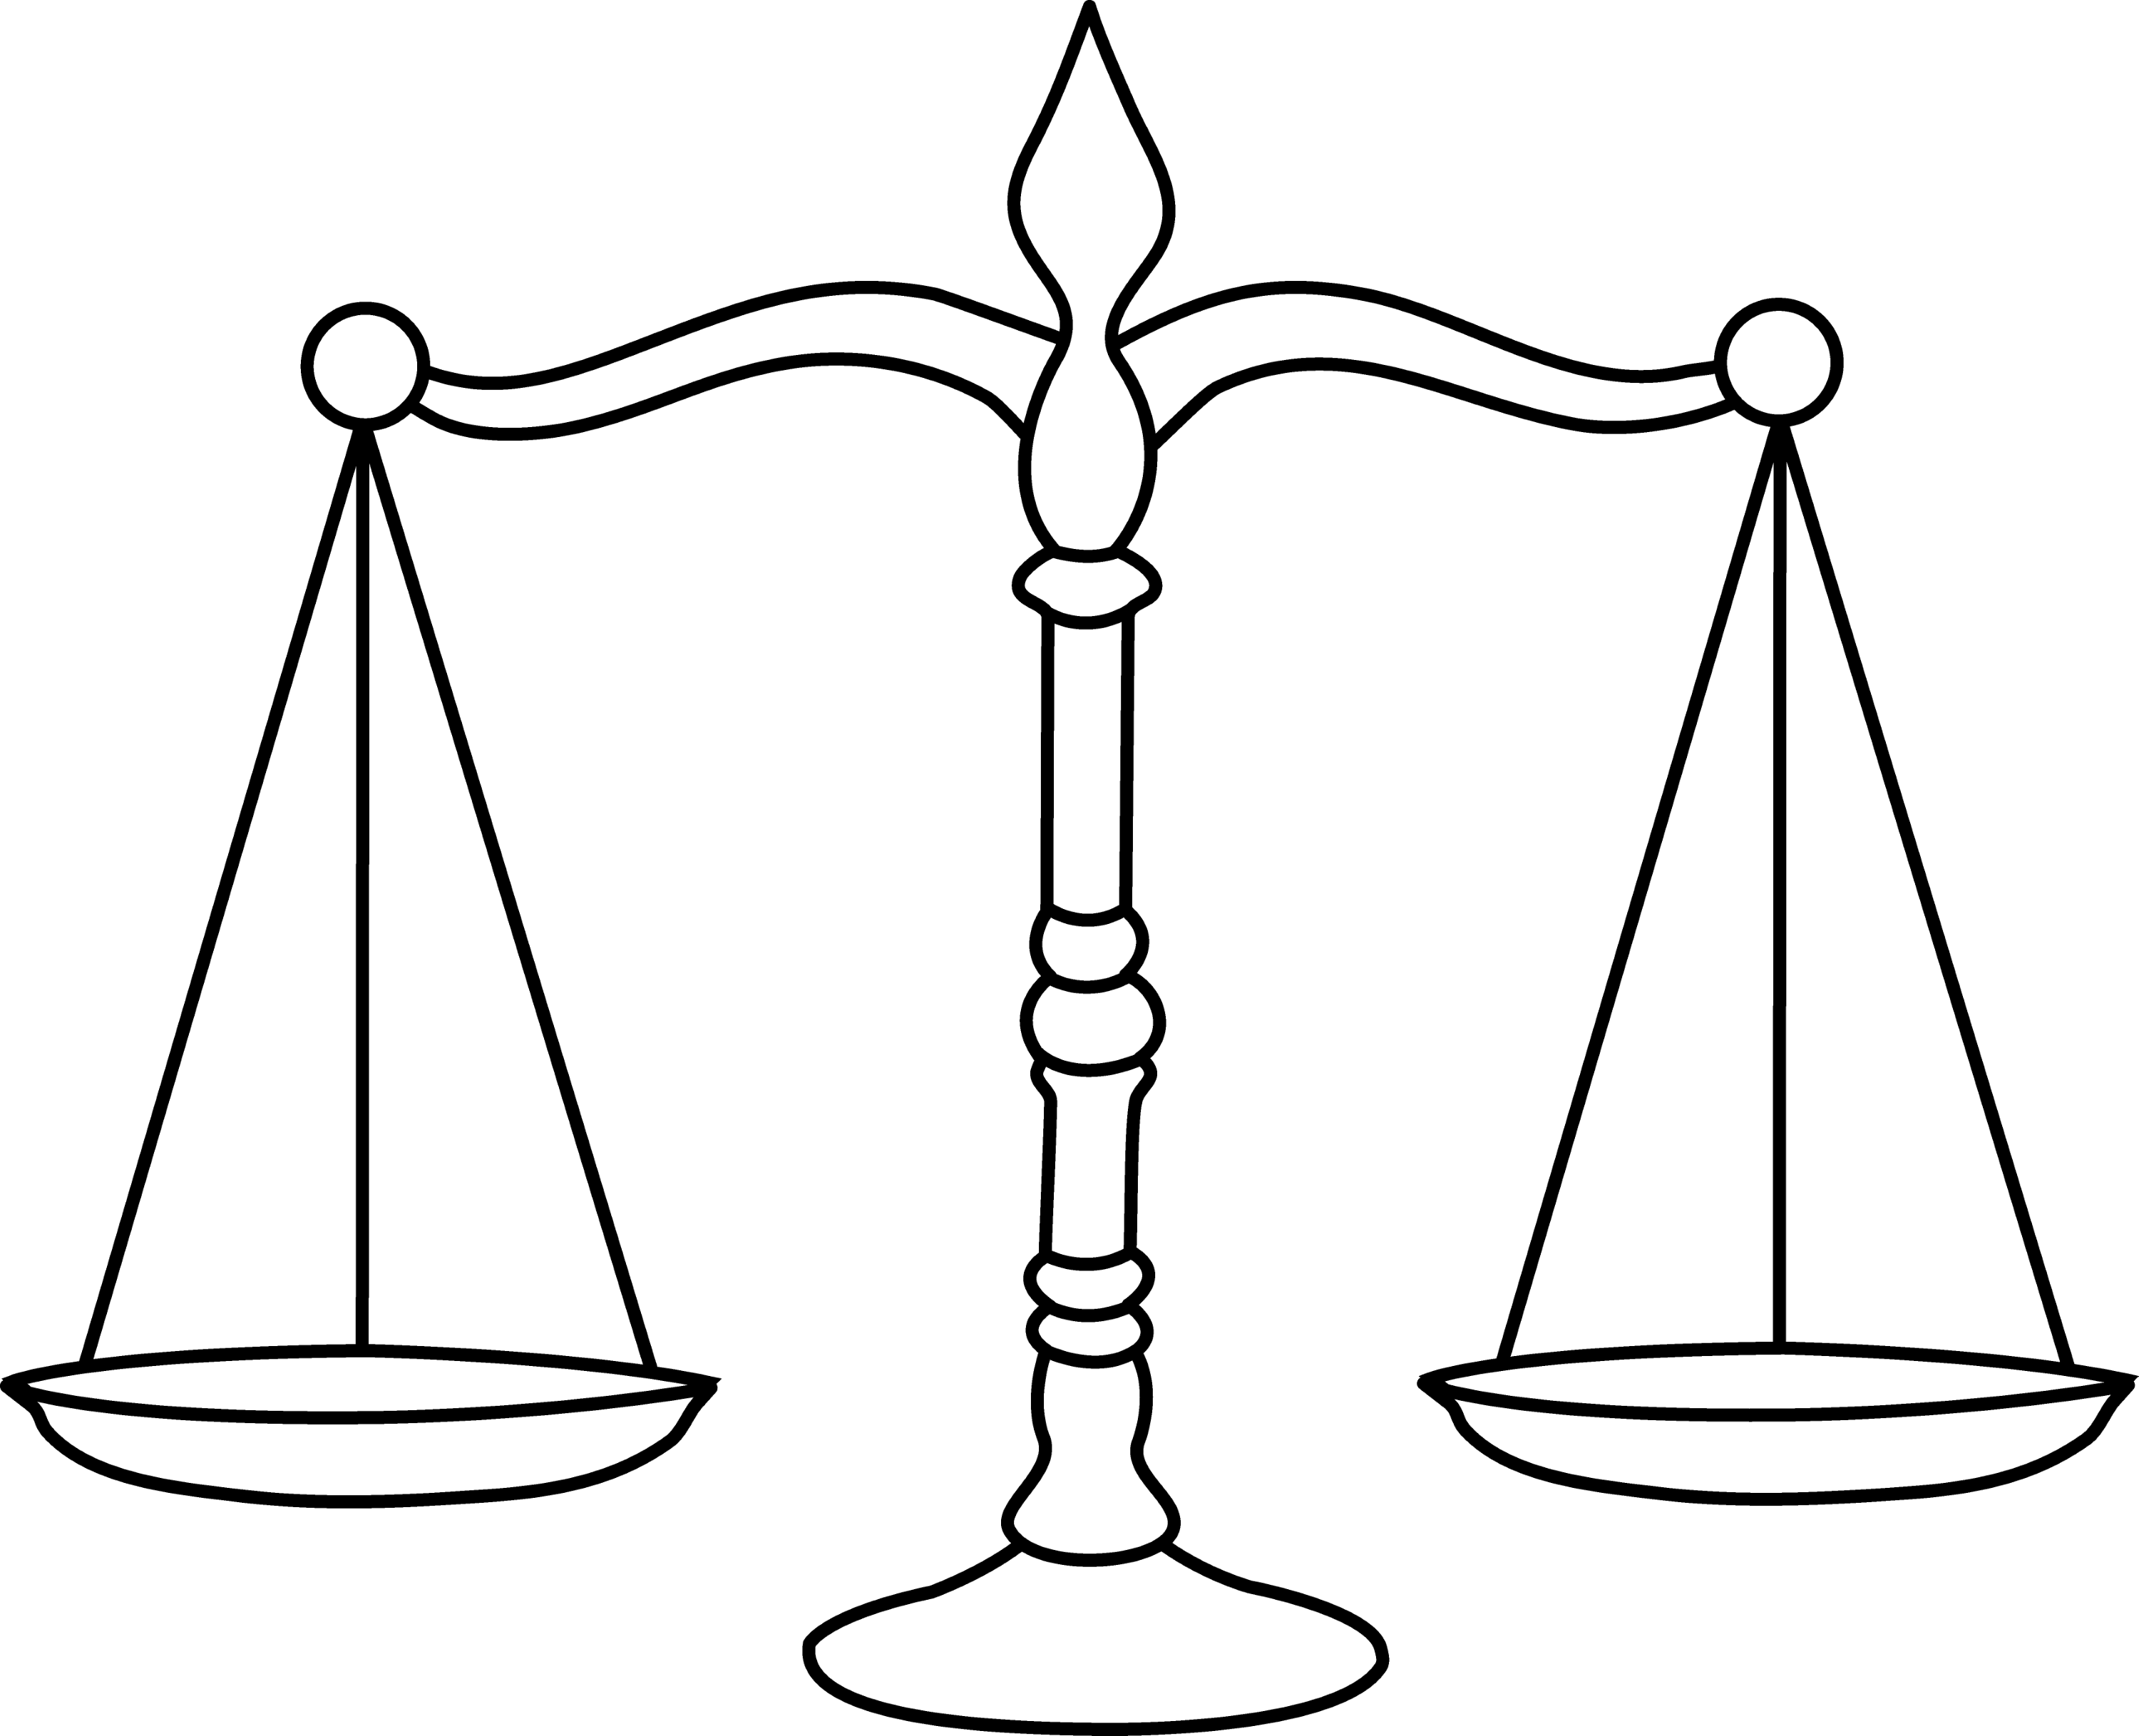 legal scales clipart - photo #24